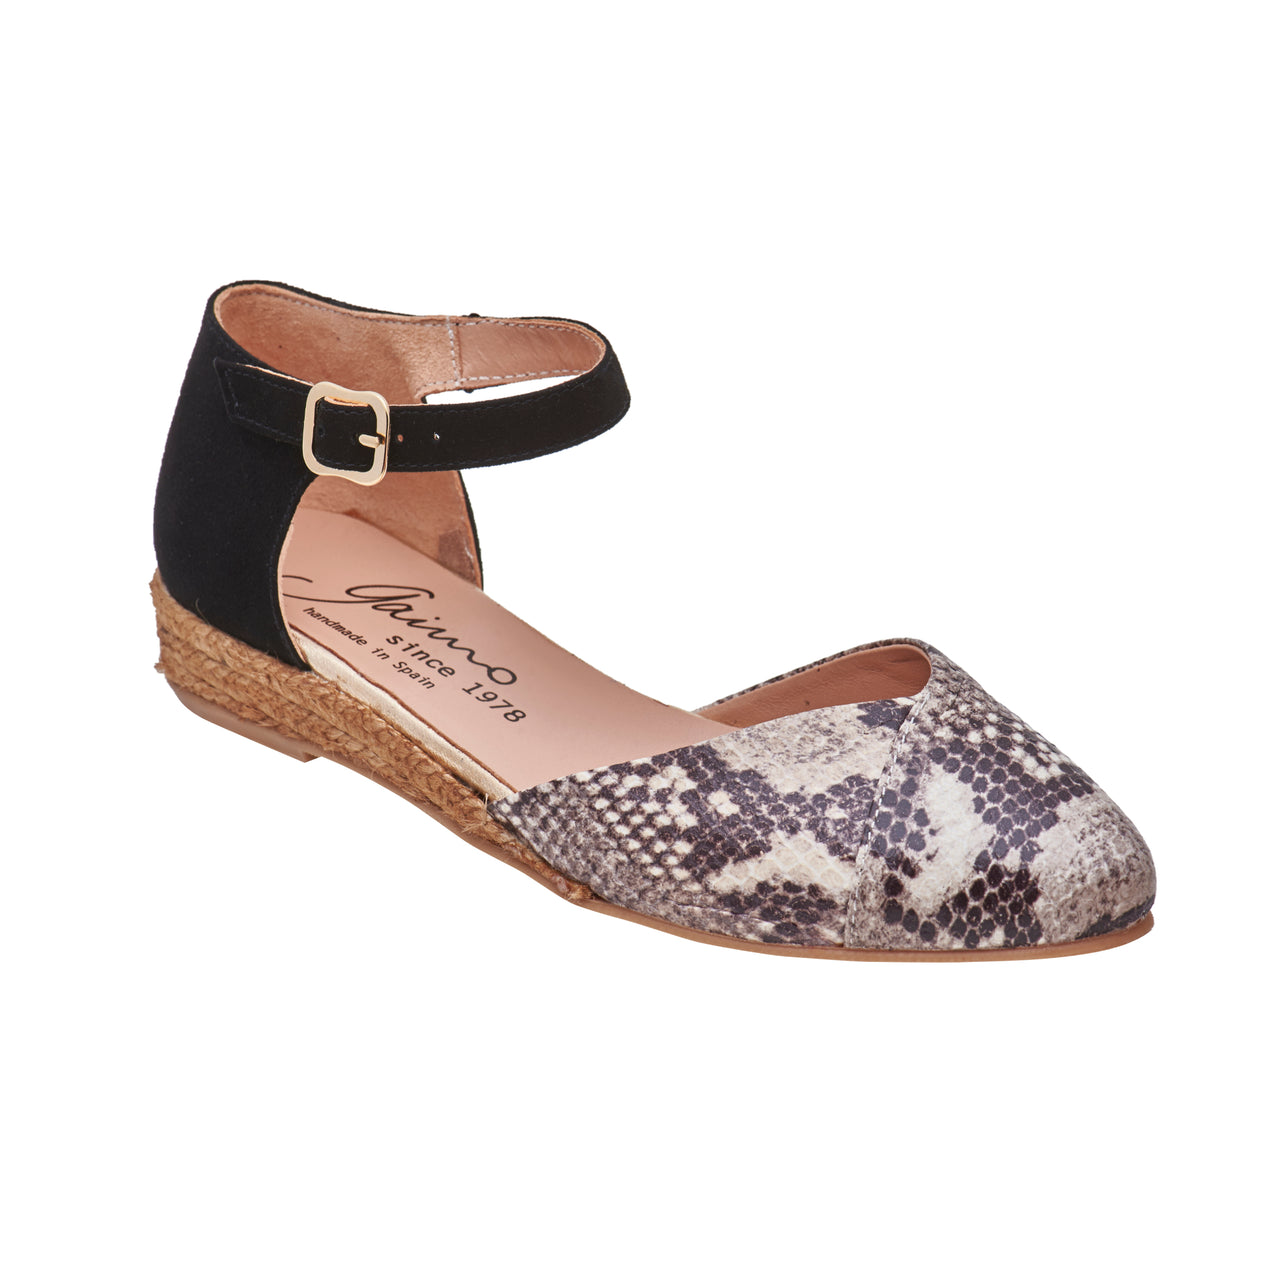 YANA Python Effect Leather espadrilles - Badt and Co - singapore